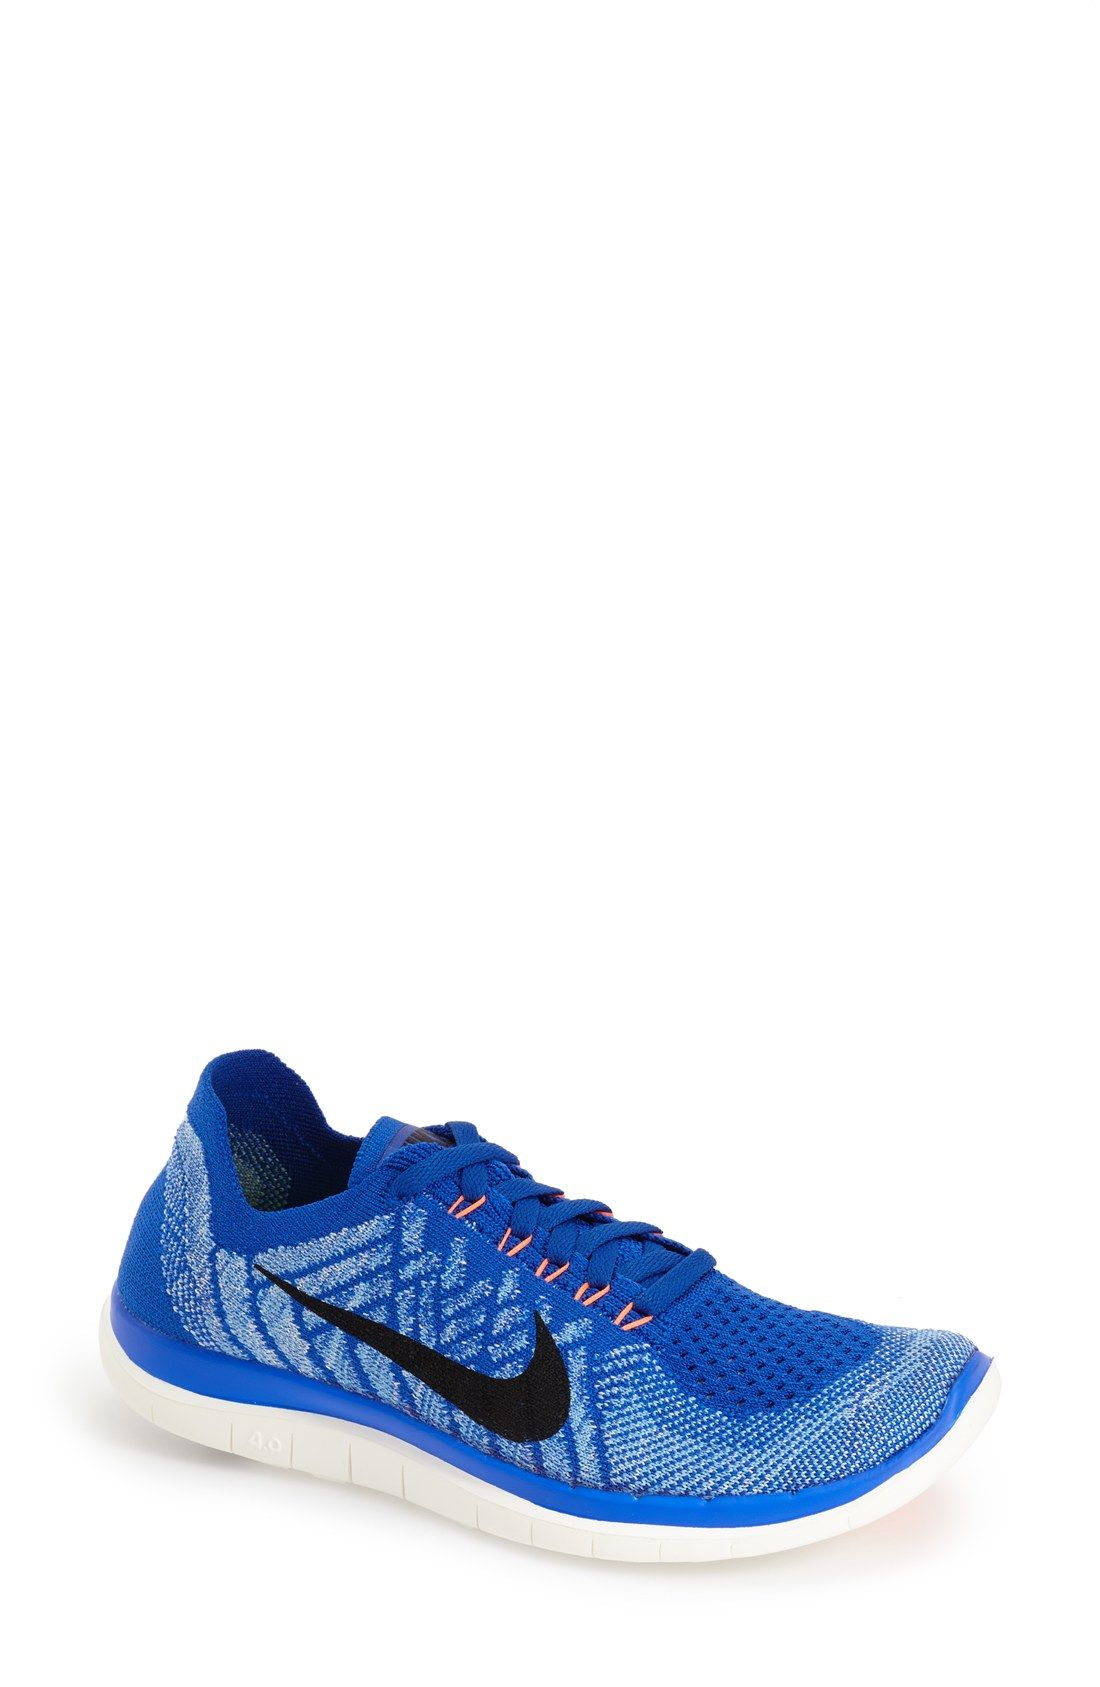 Nike Free Run 4.0 Flyknit Banque Nordstrom